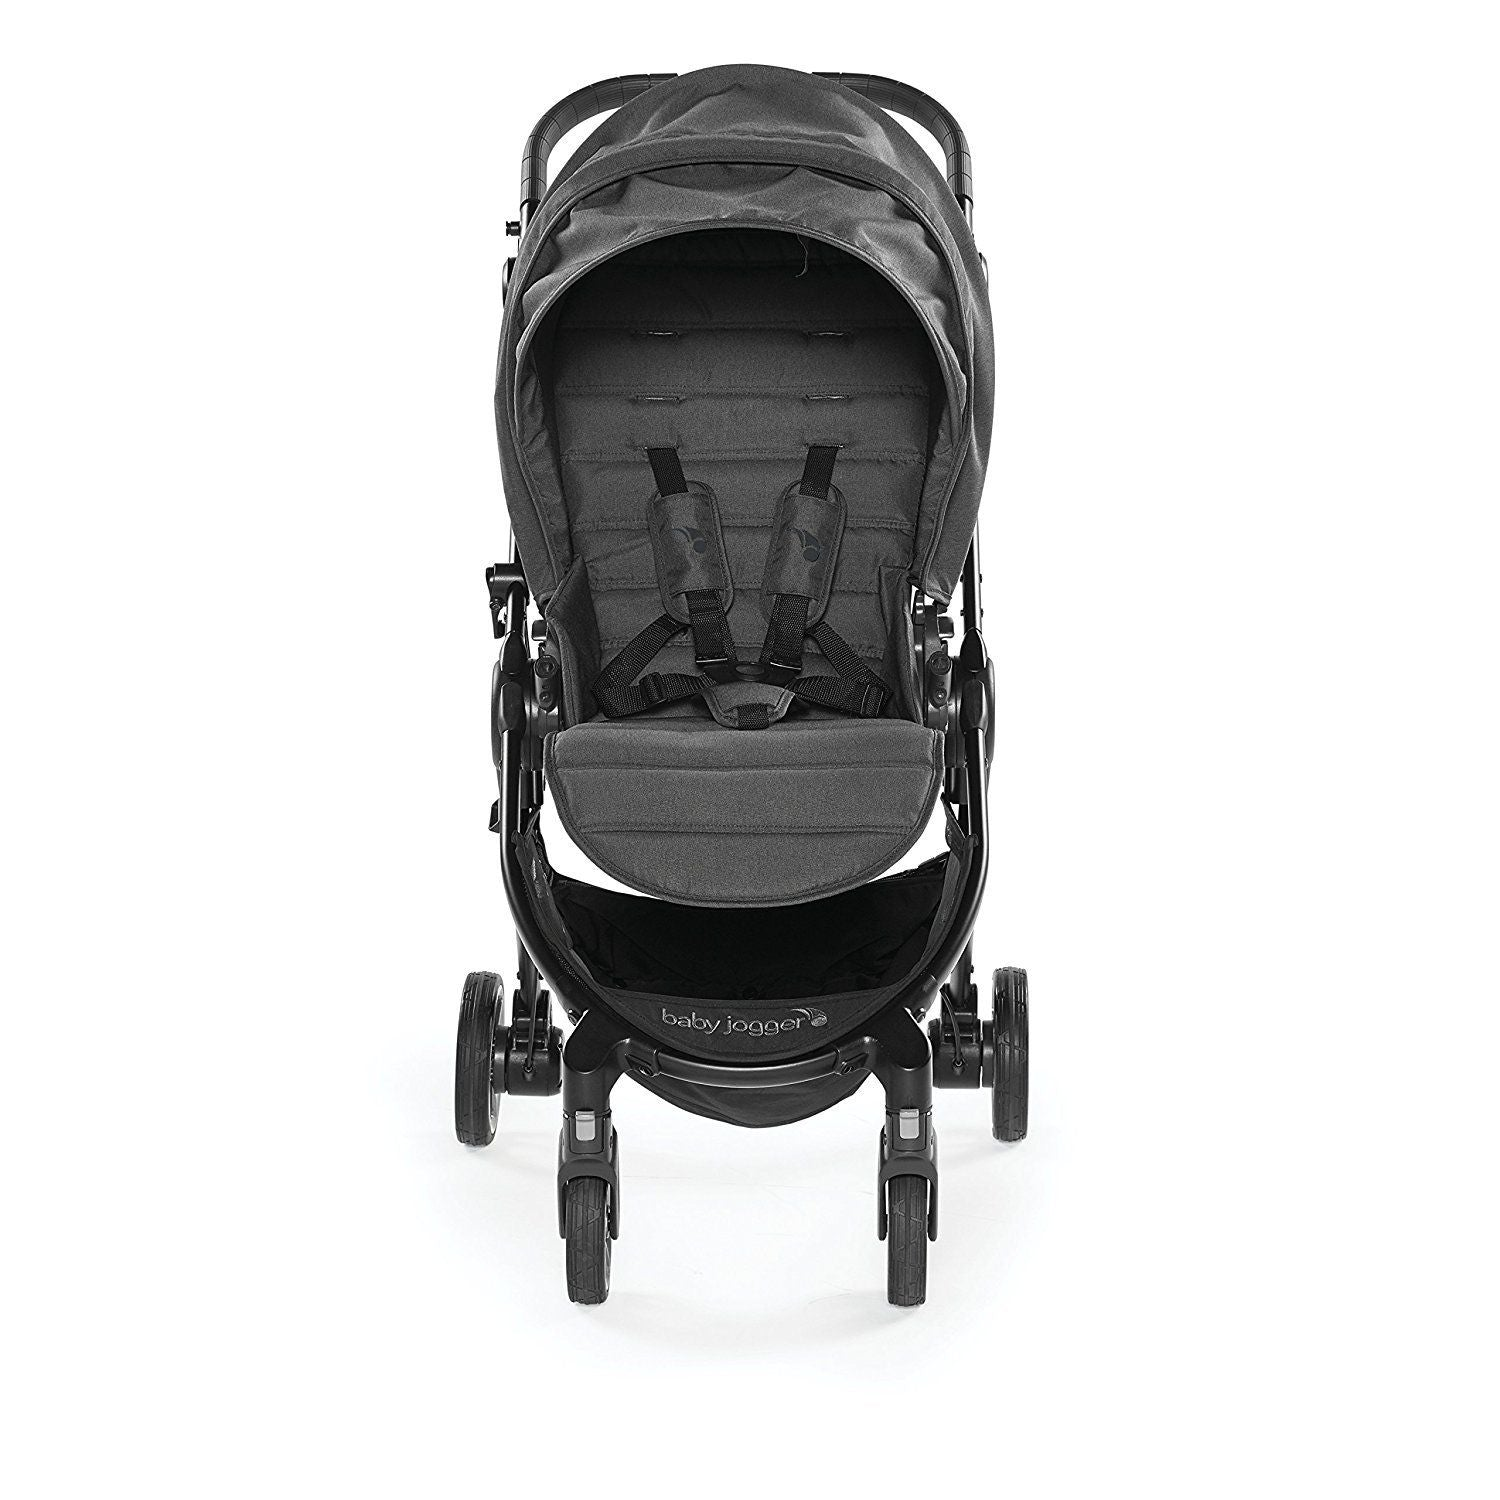 Baby Jogger 2018 City Tour Lux Stroller in Granite